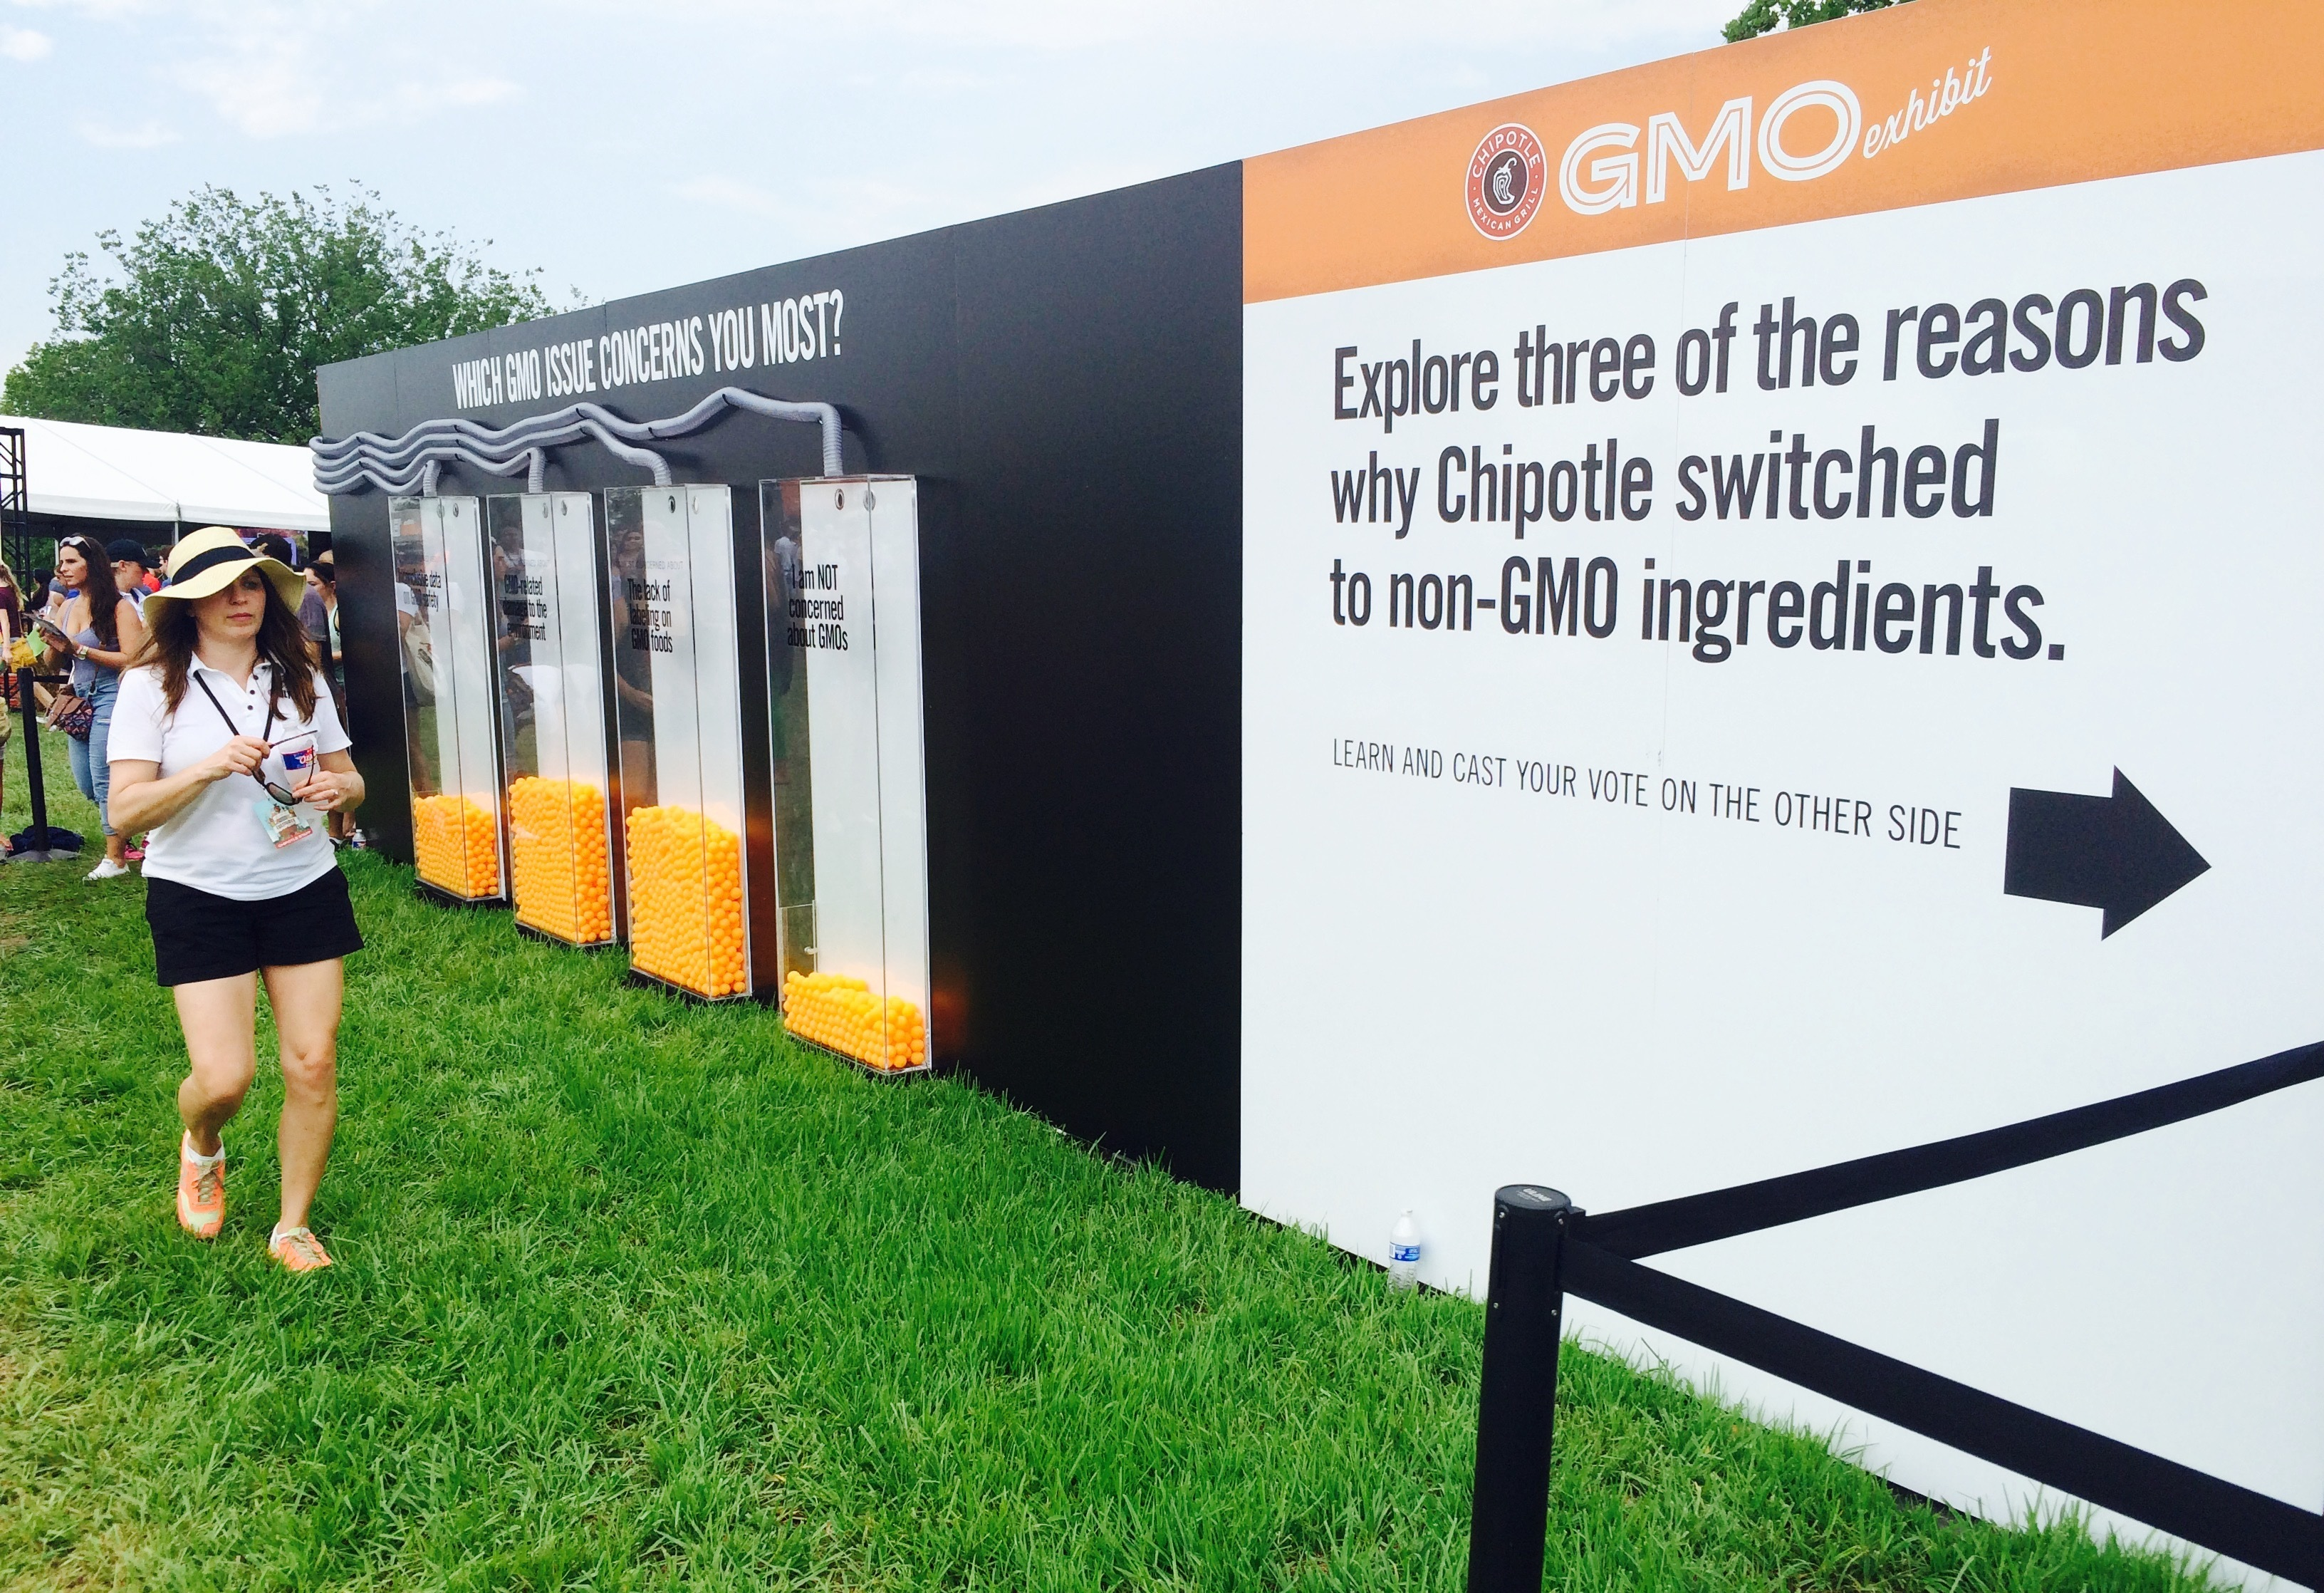 Attendees of the Chipotle Cultivate Festival in Kansas City, Mo., on July 18 could vote on their opinions about genetically modified organisms after going through an exhibit.